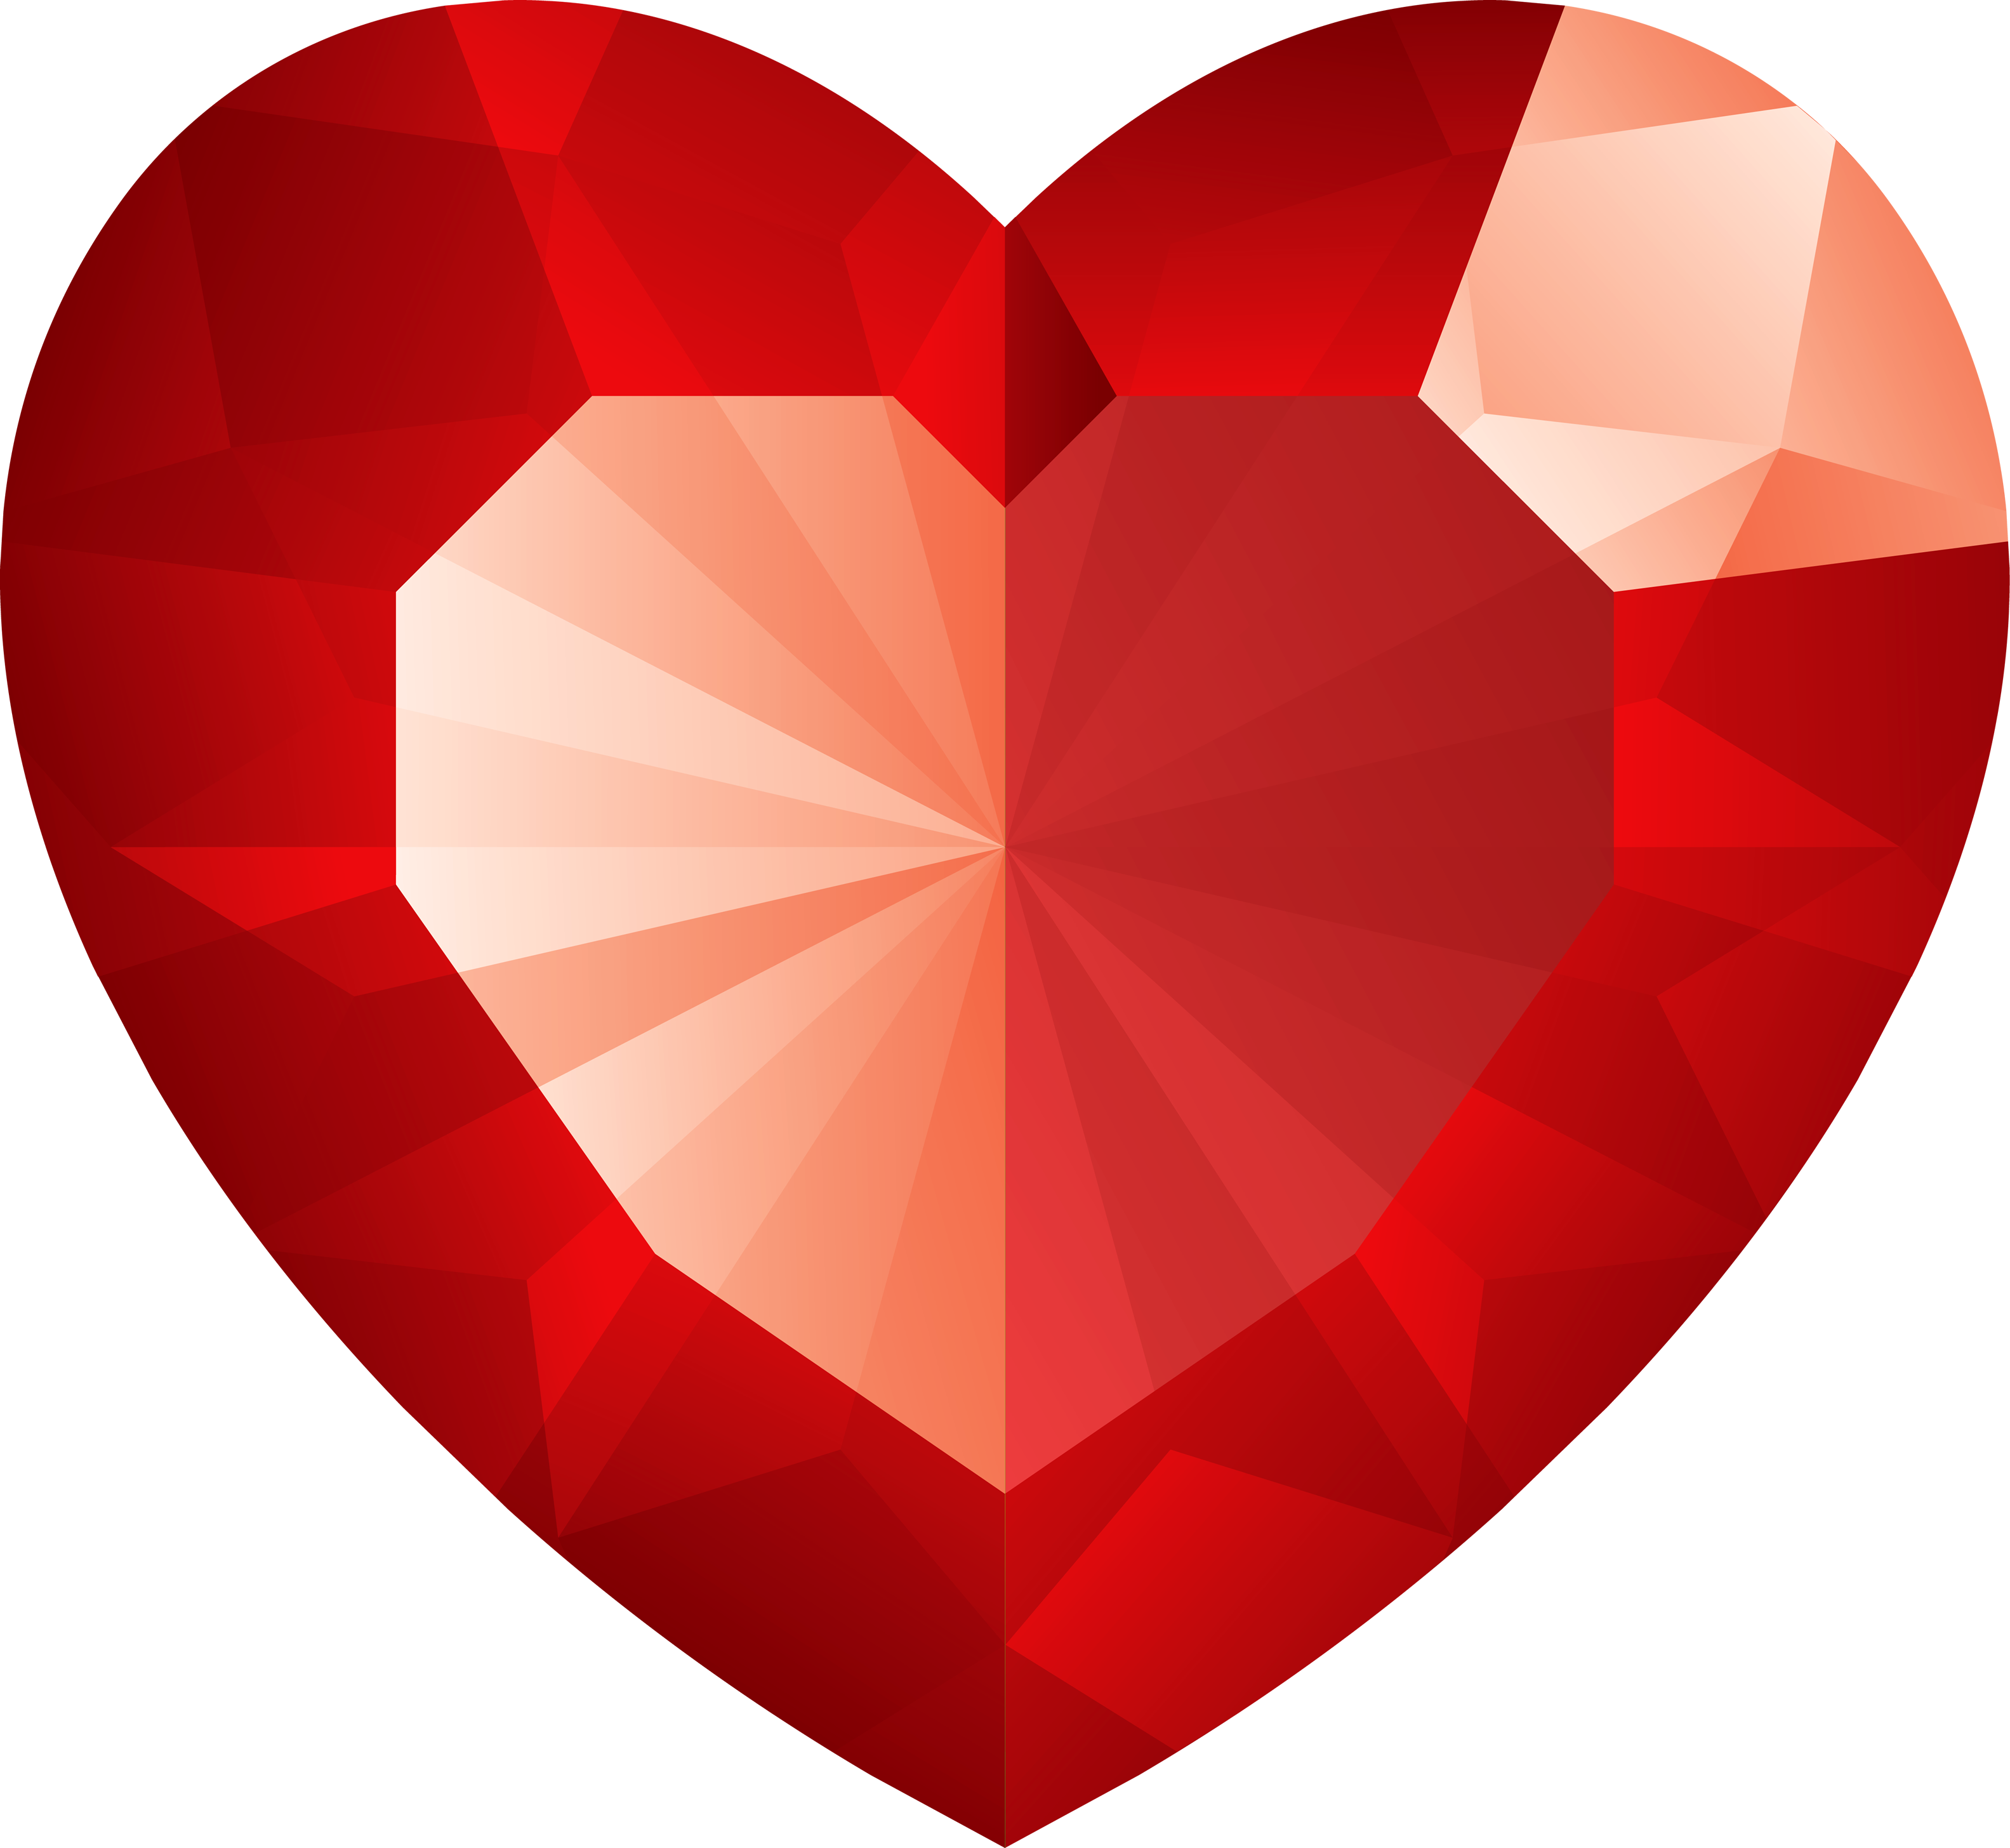 Dark red heart png. Image purepng free transparent